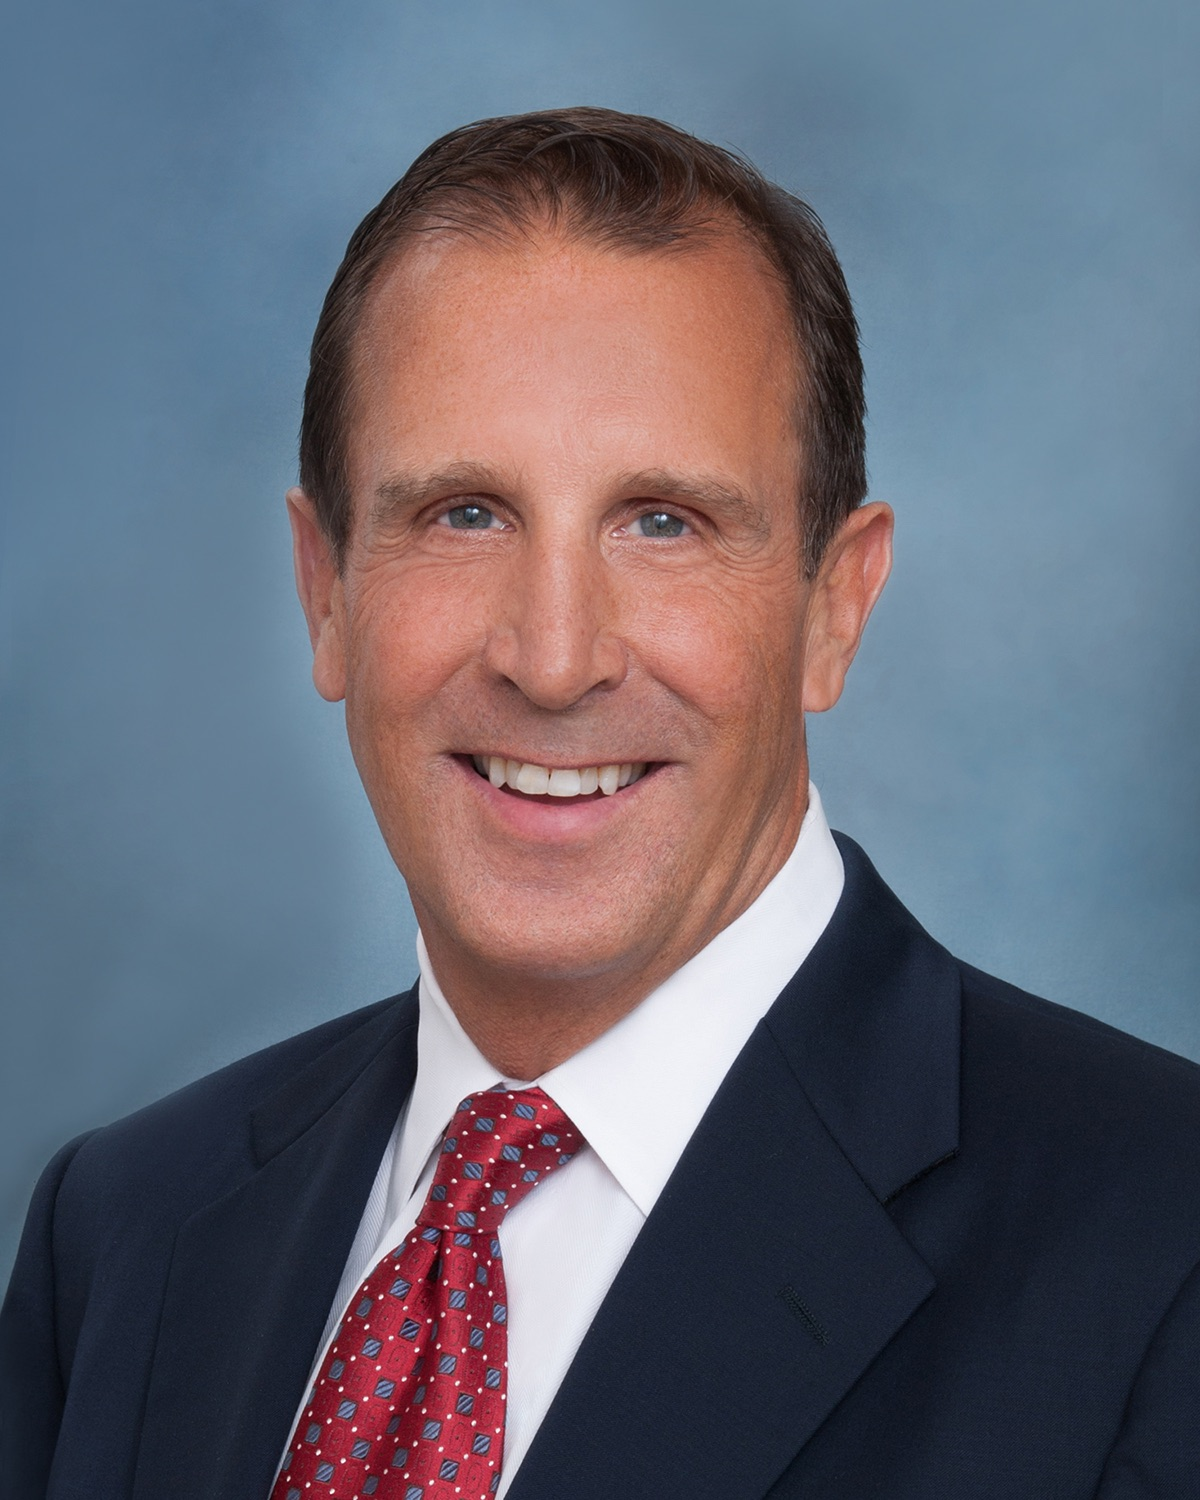 San Diego Notary, a man smiles in a suit and tie